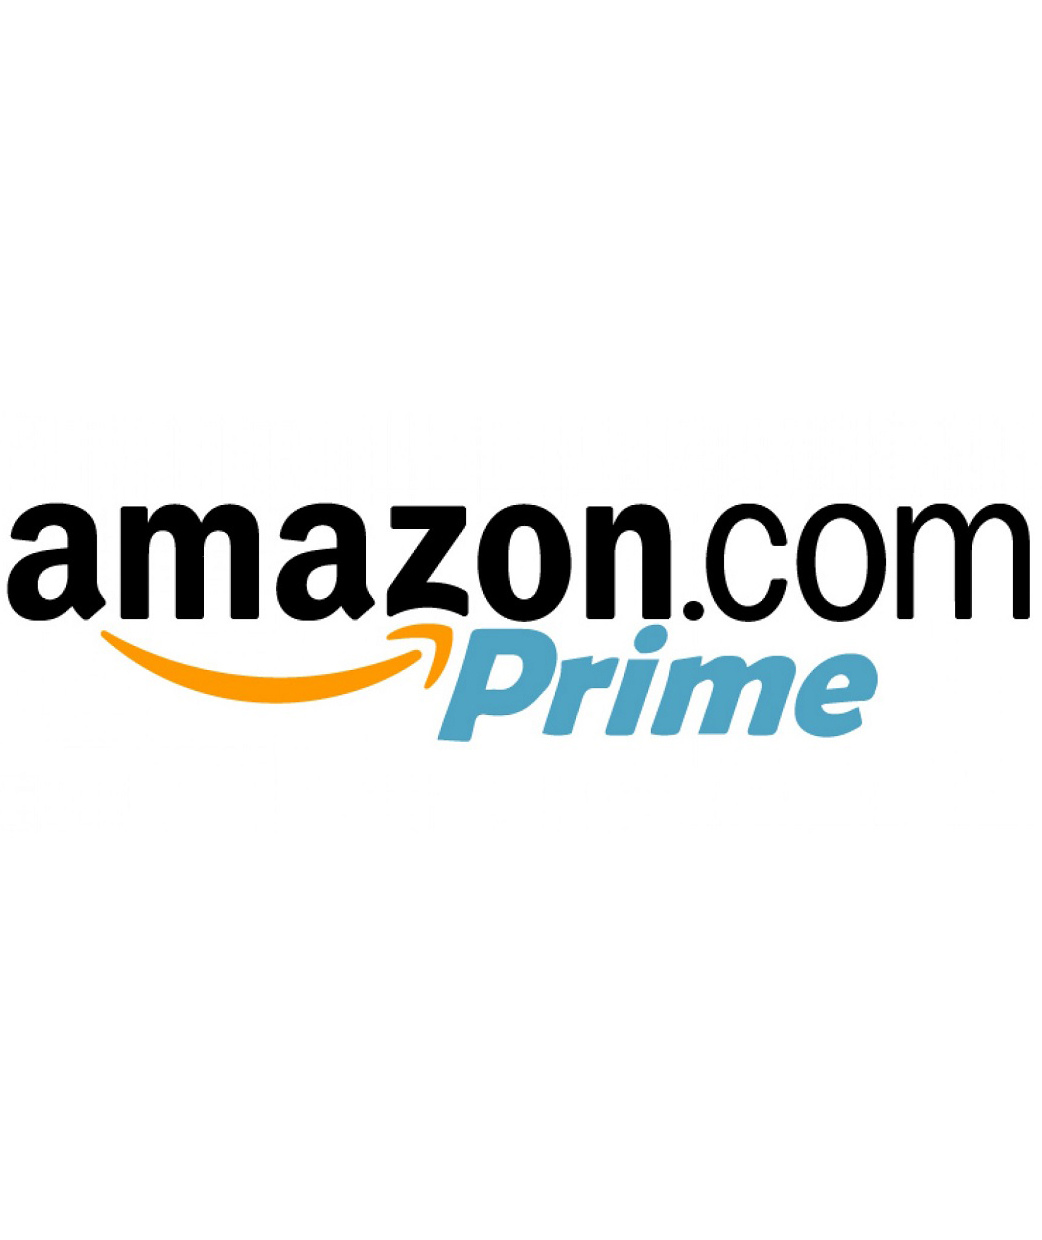 Yearlong Amazon Prime Membership